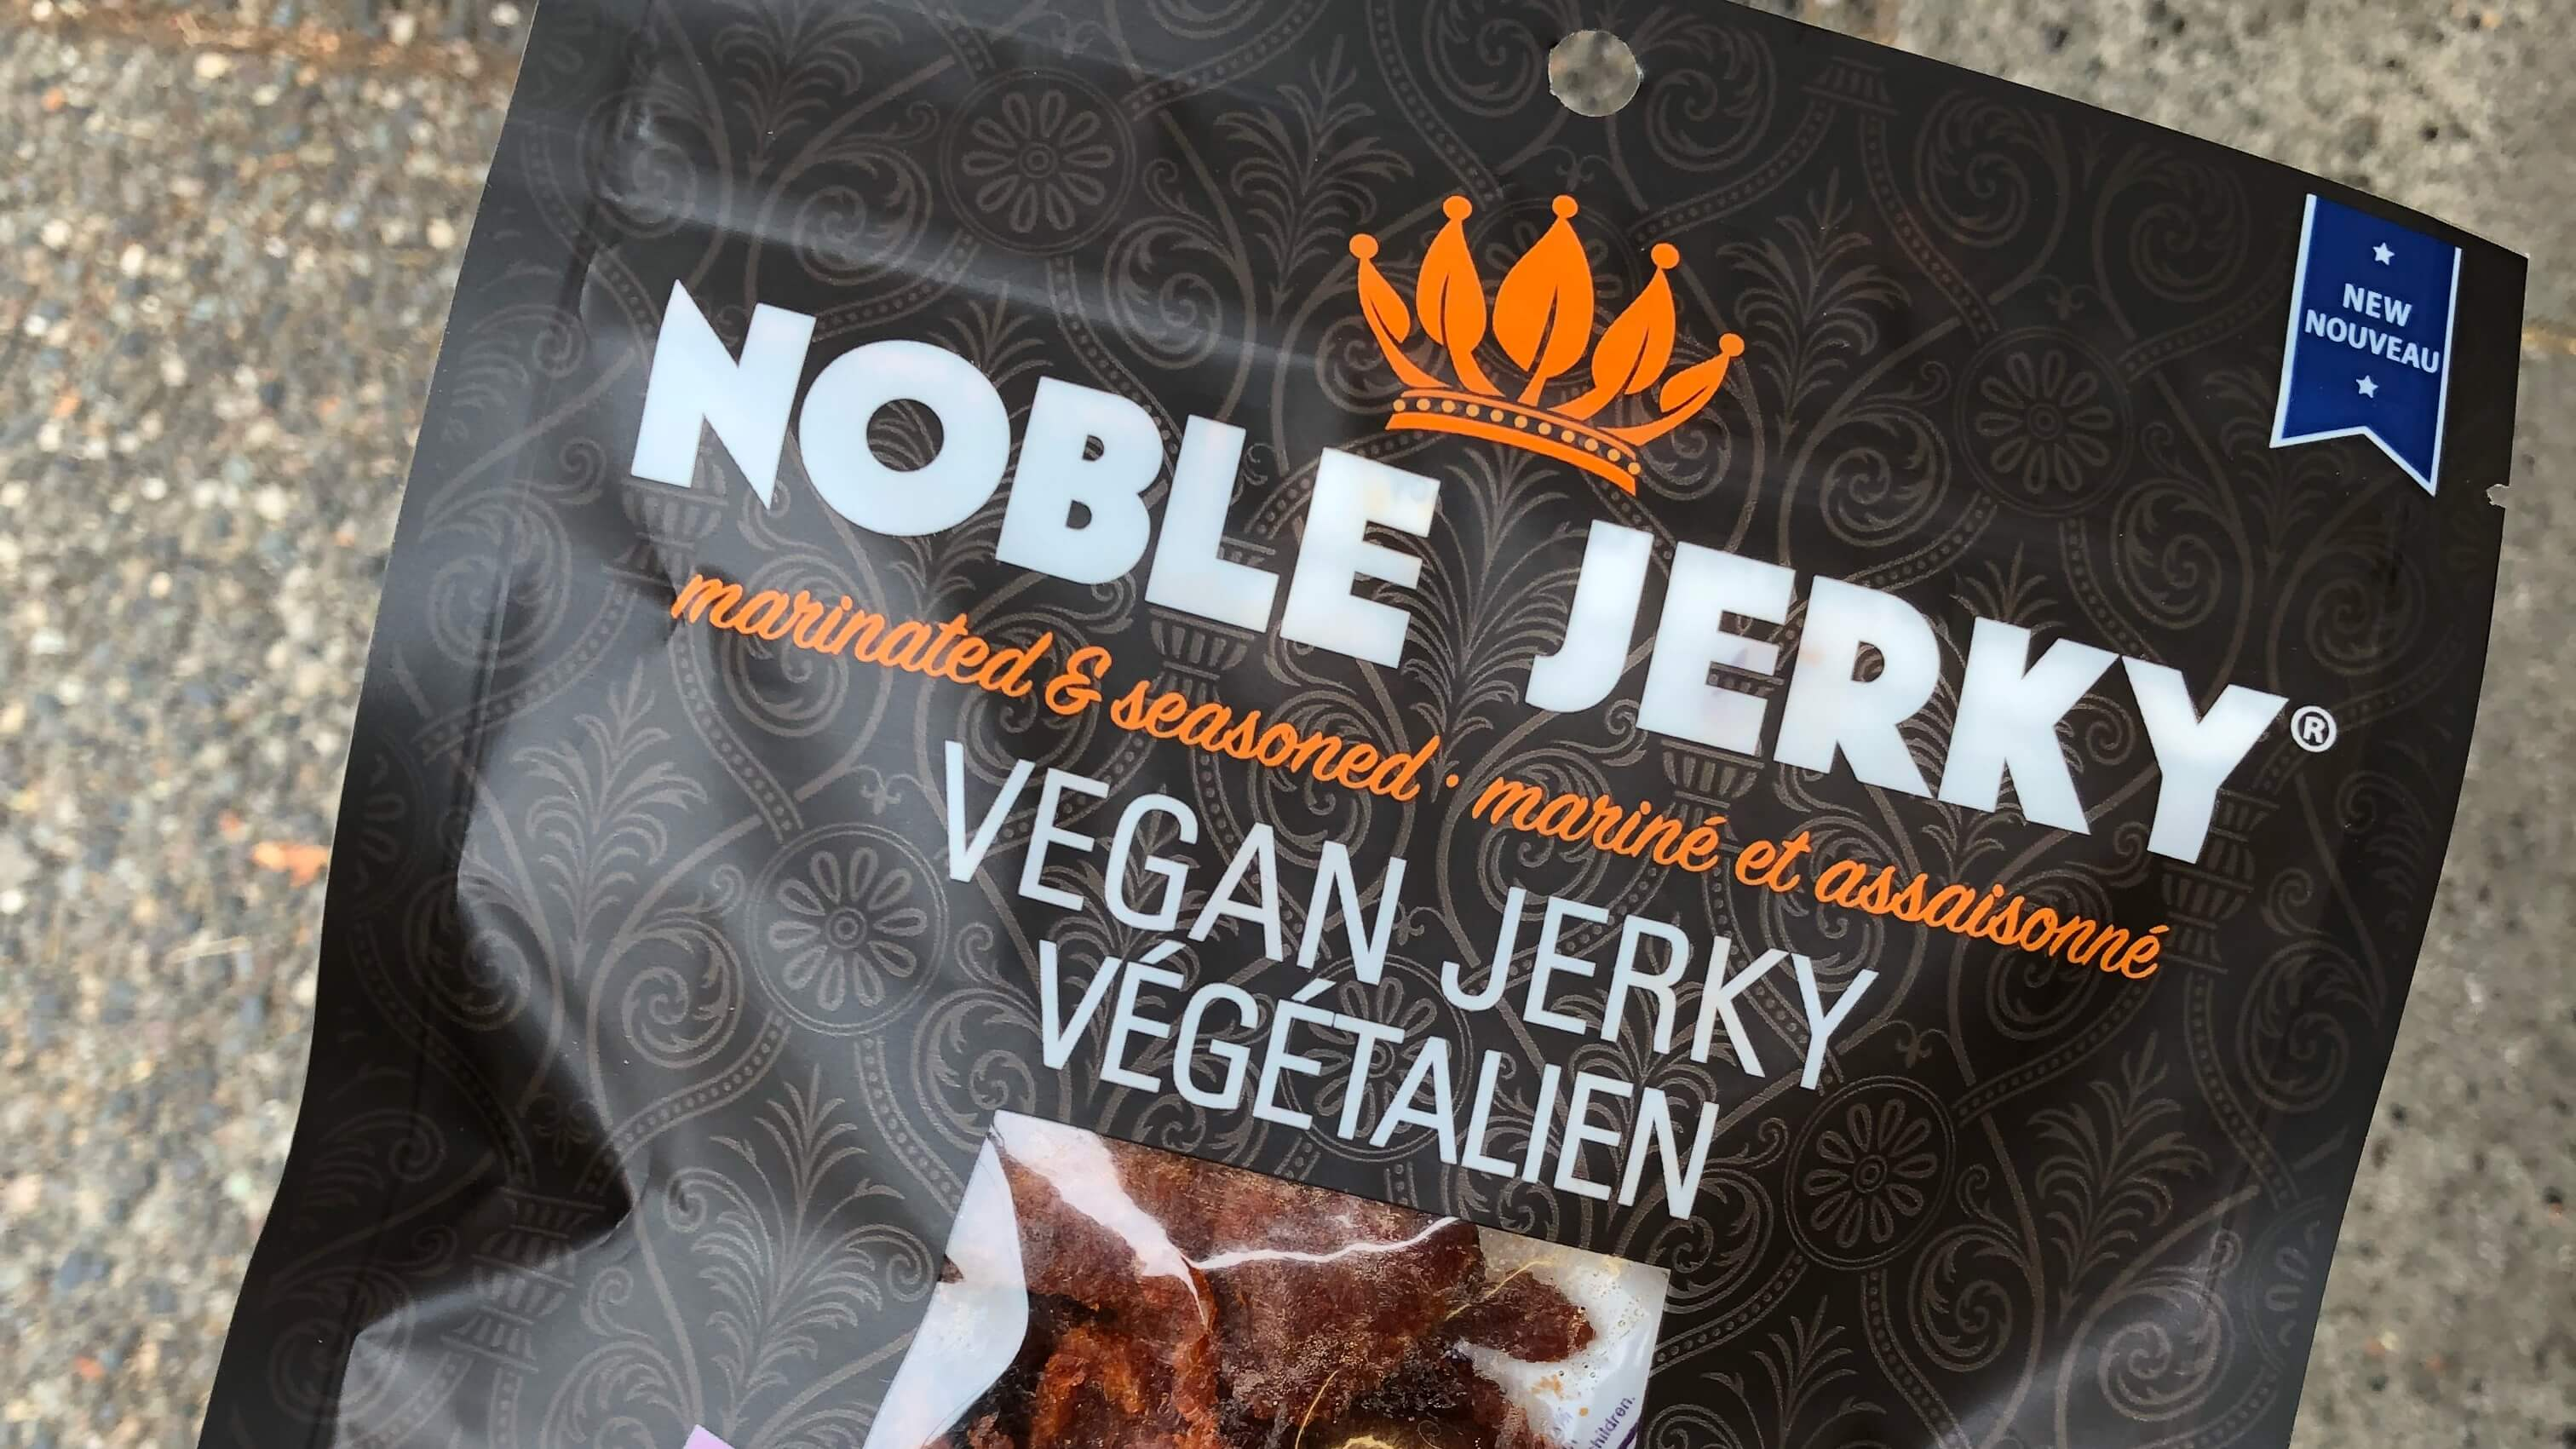 NOBLE Vegan Jerky Outsells All Dried Meat on Amazon